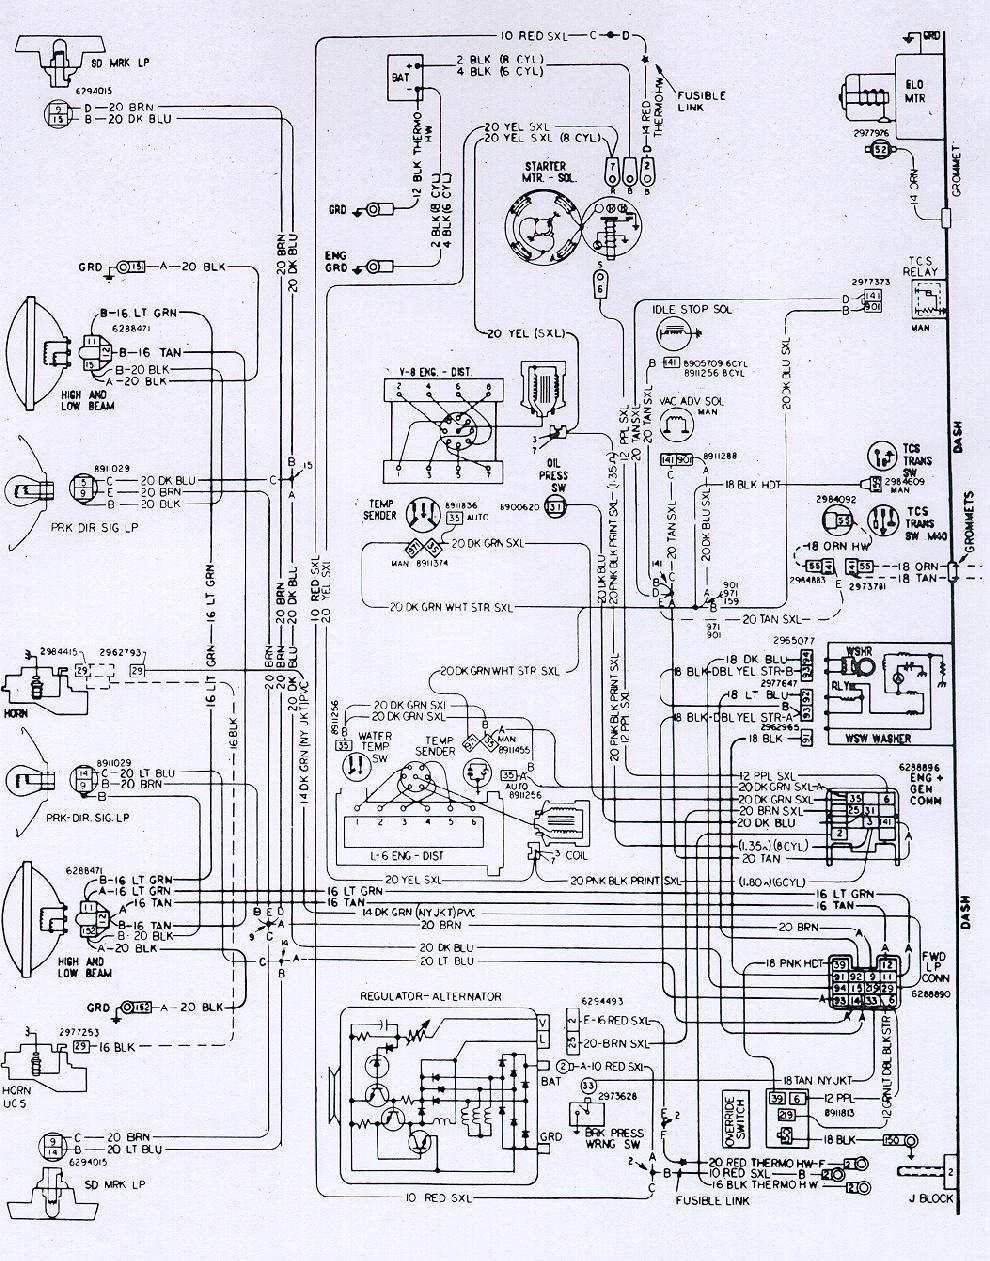 medium resolution of 1972 camaro wiring diagram wiring diagrams tar 1972 camaro wiring diagram wiring diagram 1972 camaro instrument